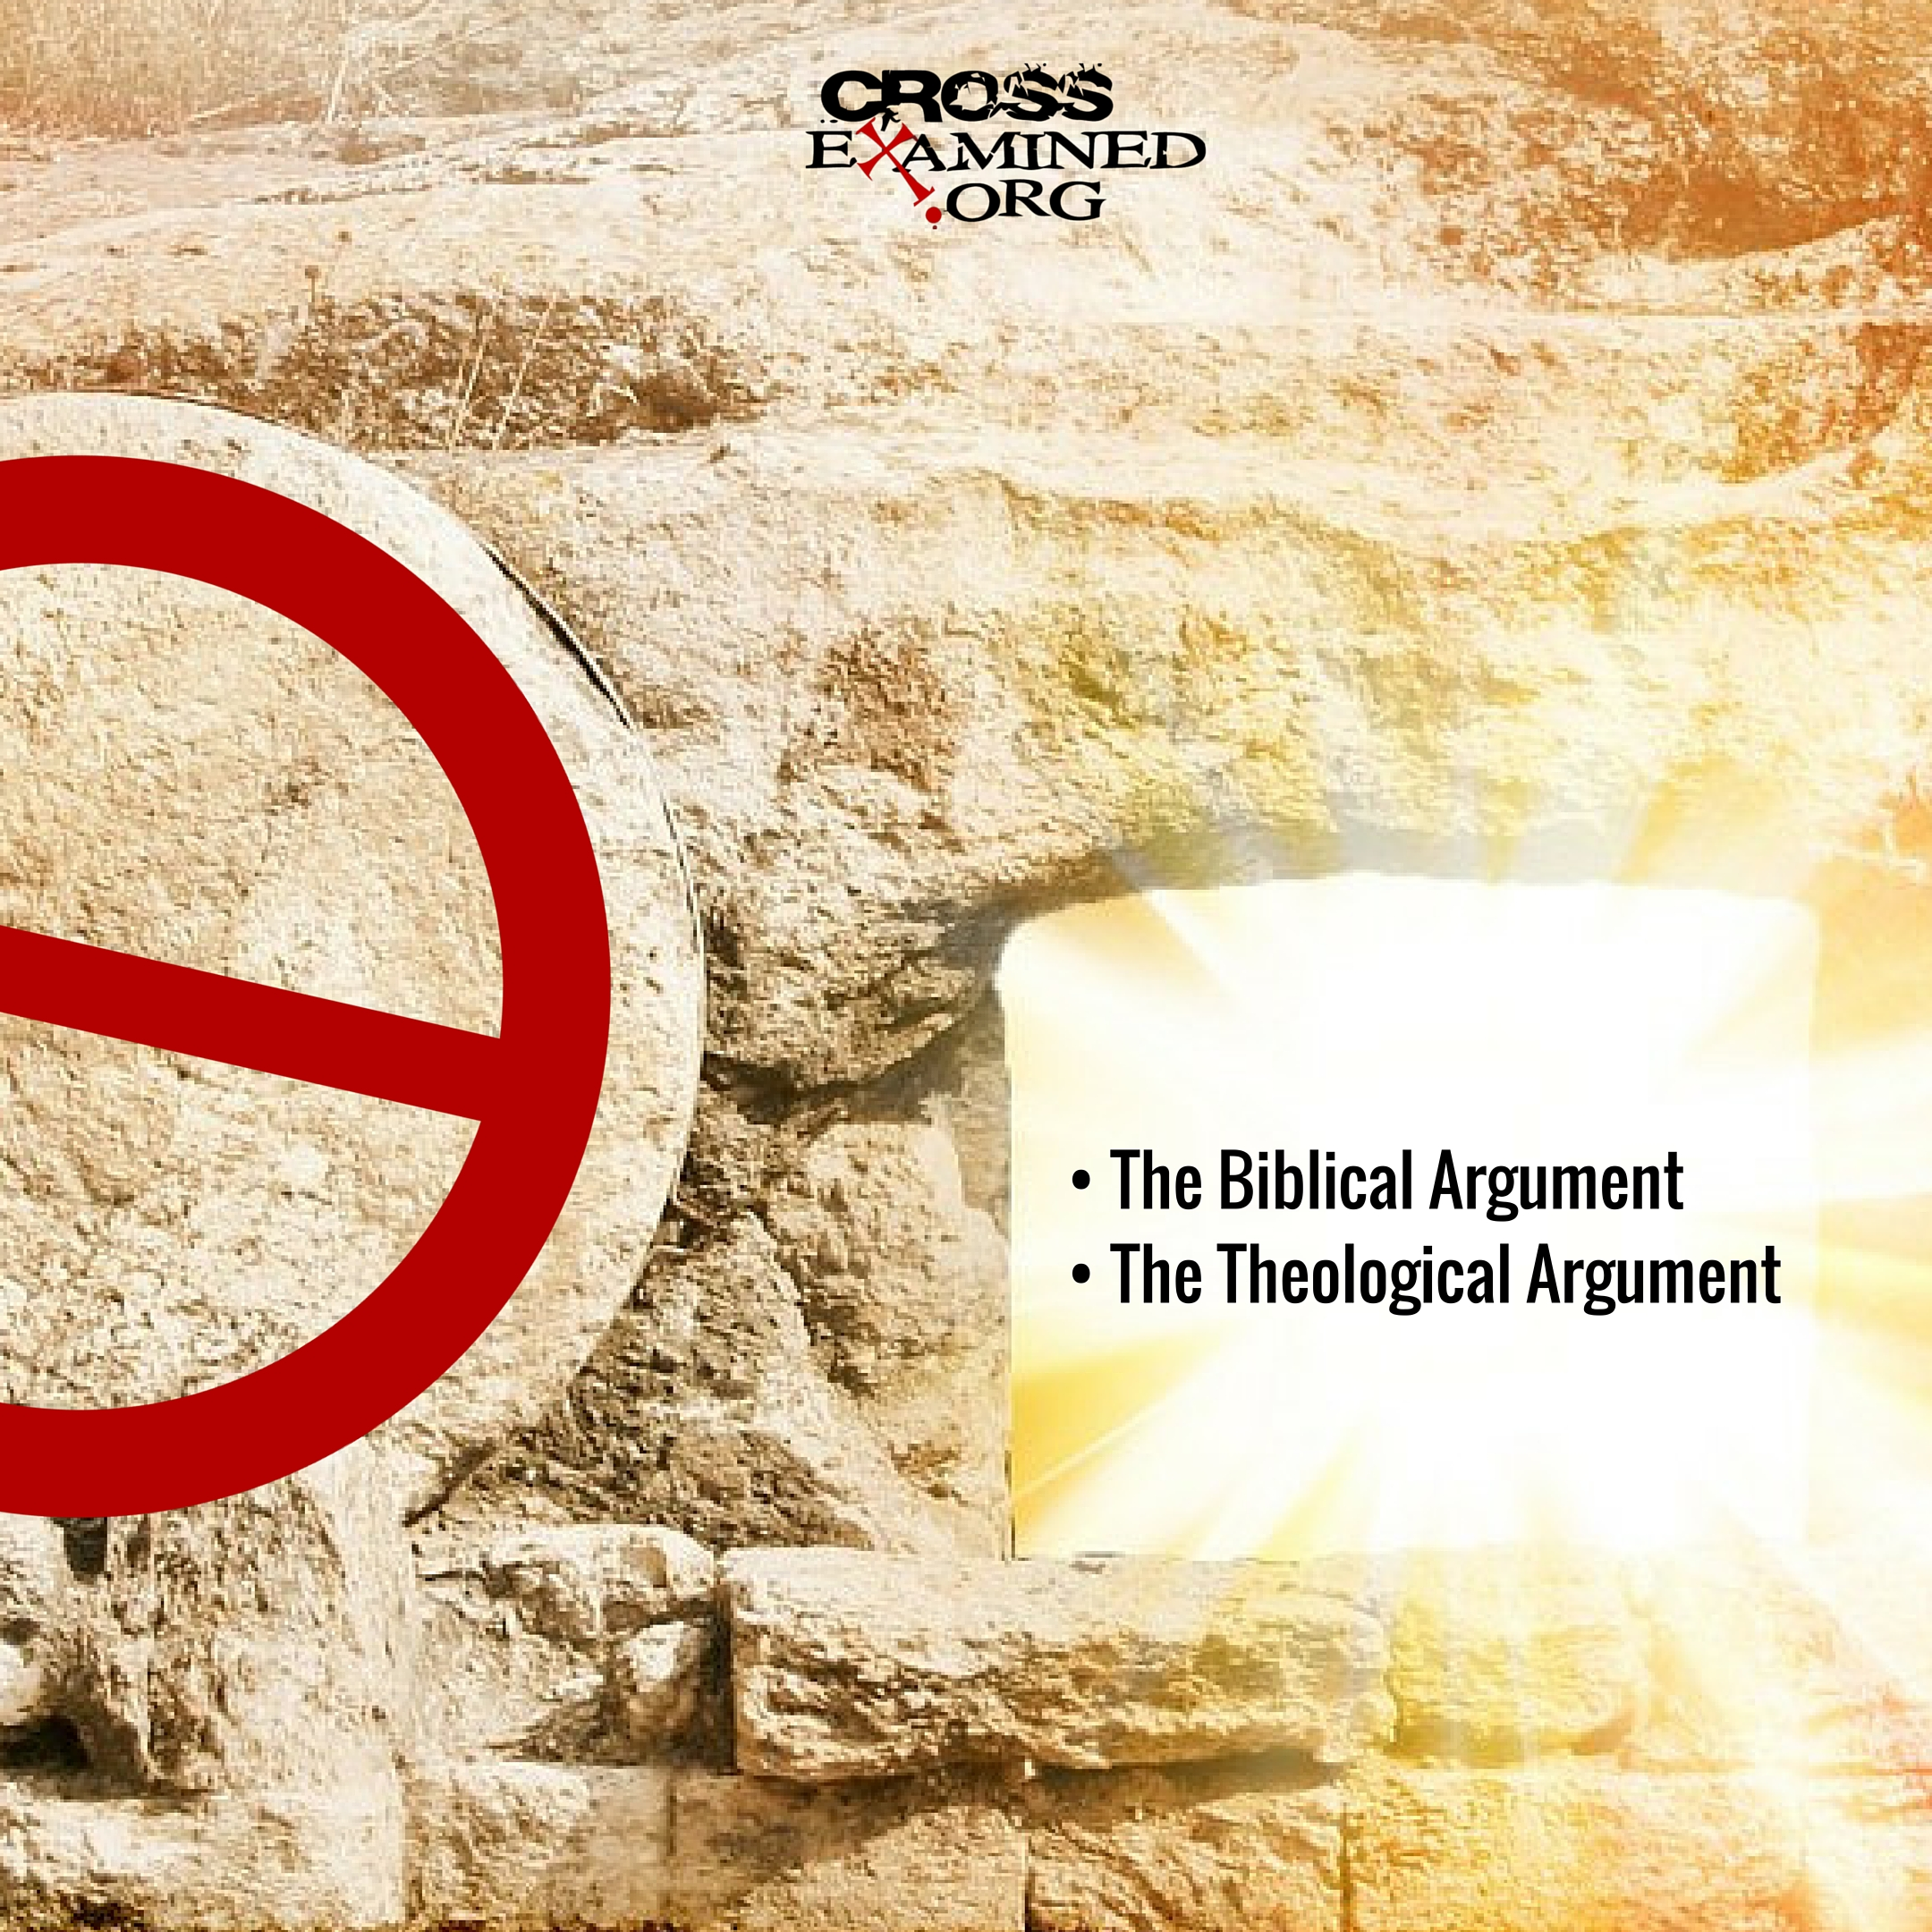 A Case for the Empty Tomb (Part 3-The Biblical and Theological Arguments)